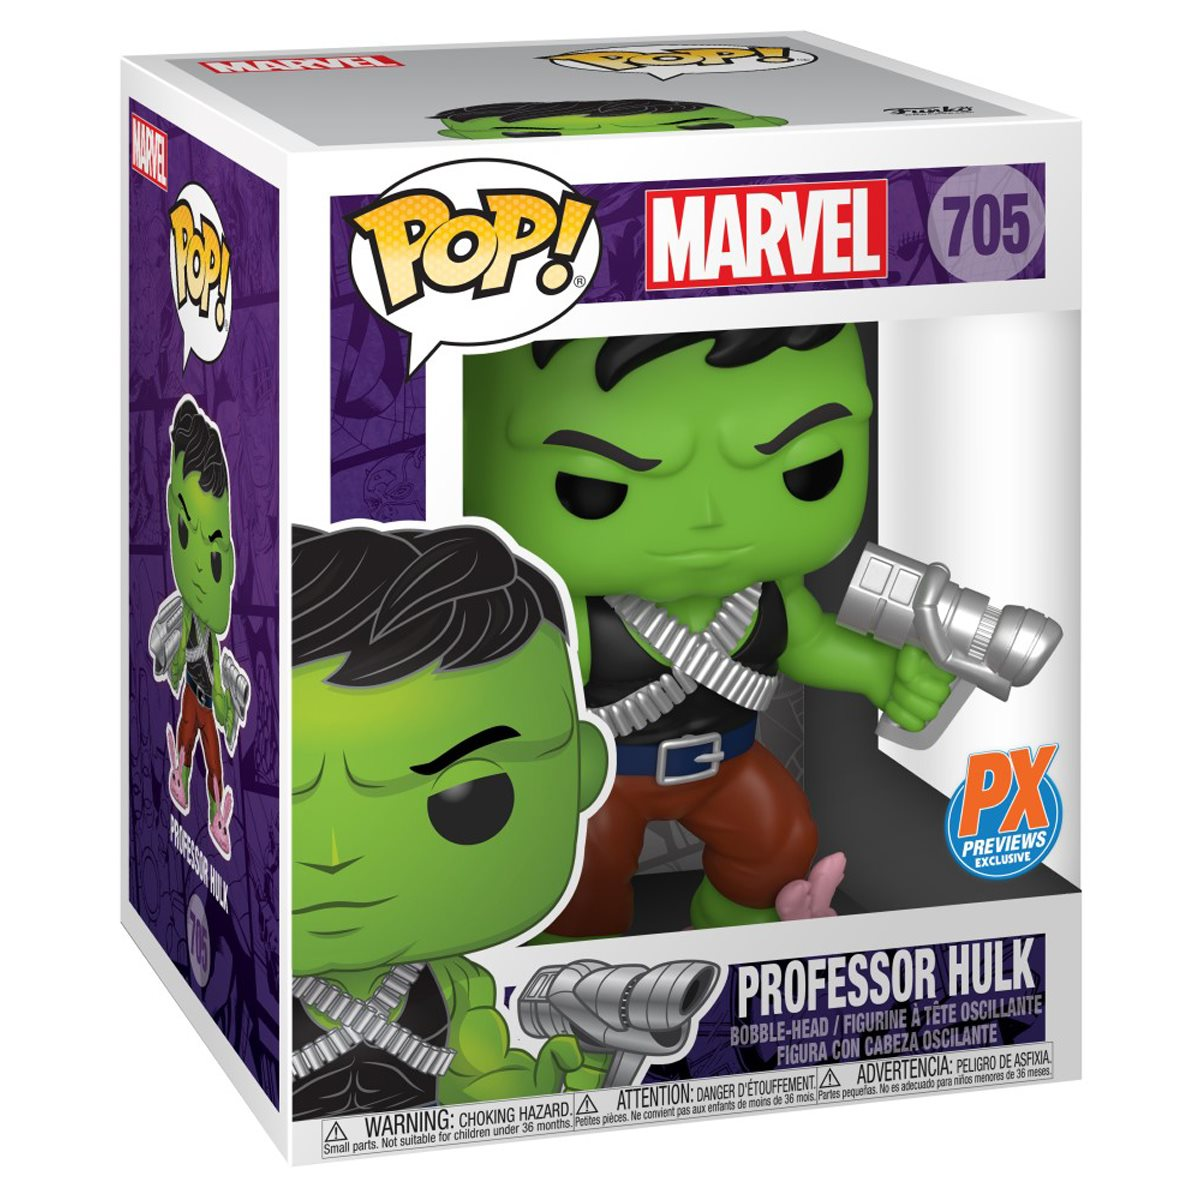 Marvel Heroes Professor Hulk 6-Inch Previews Exclusive Chase Bundle [2 Figures] (November Preorder)